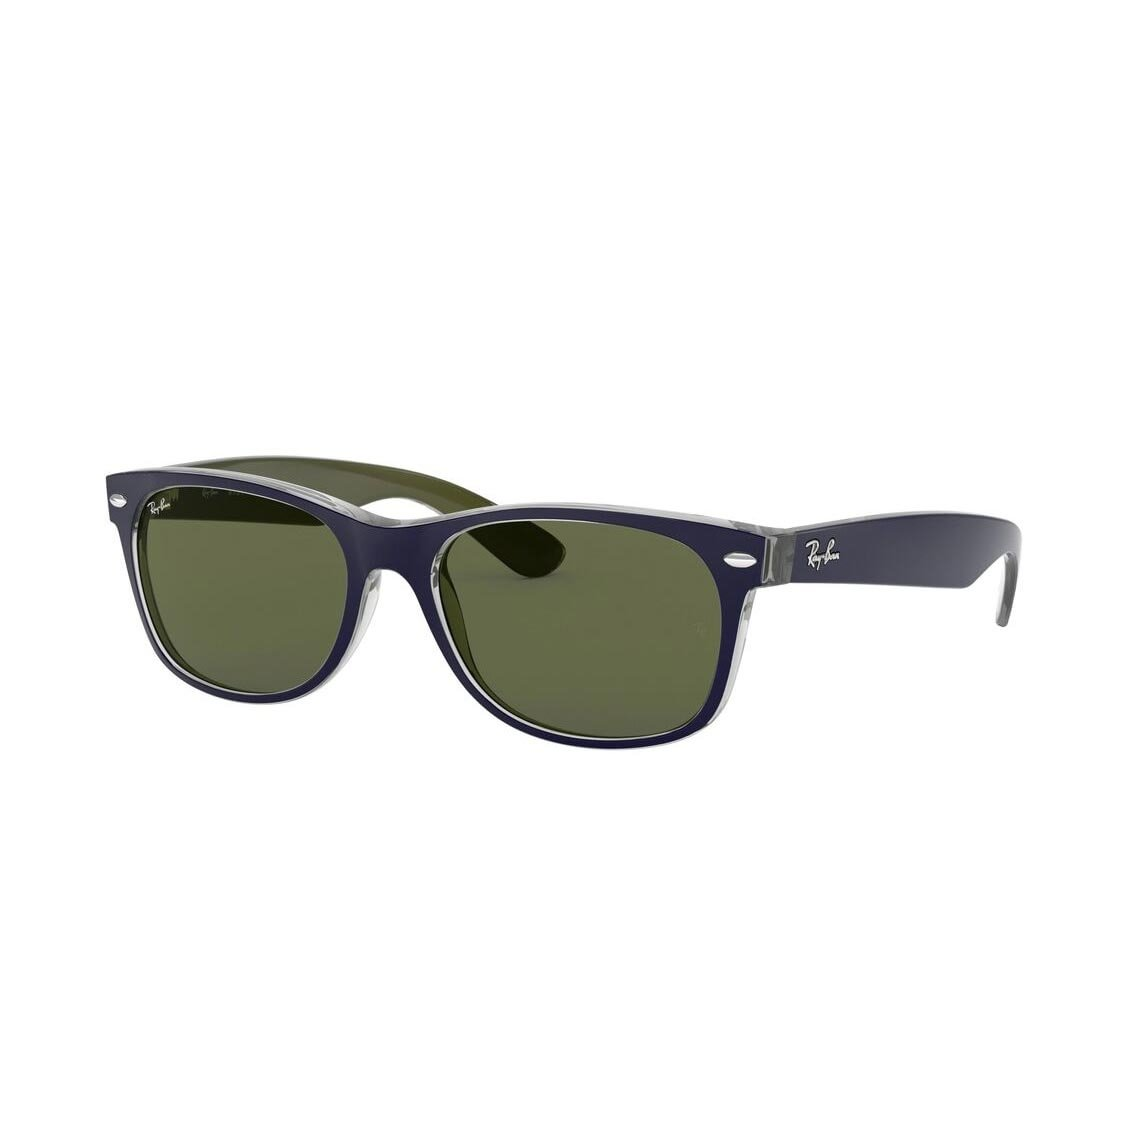 Ray-Ban New Wayfarer RB2132 6188 52